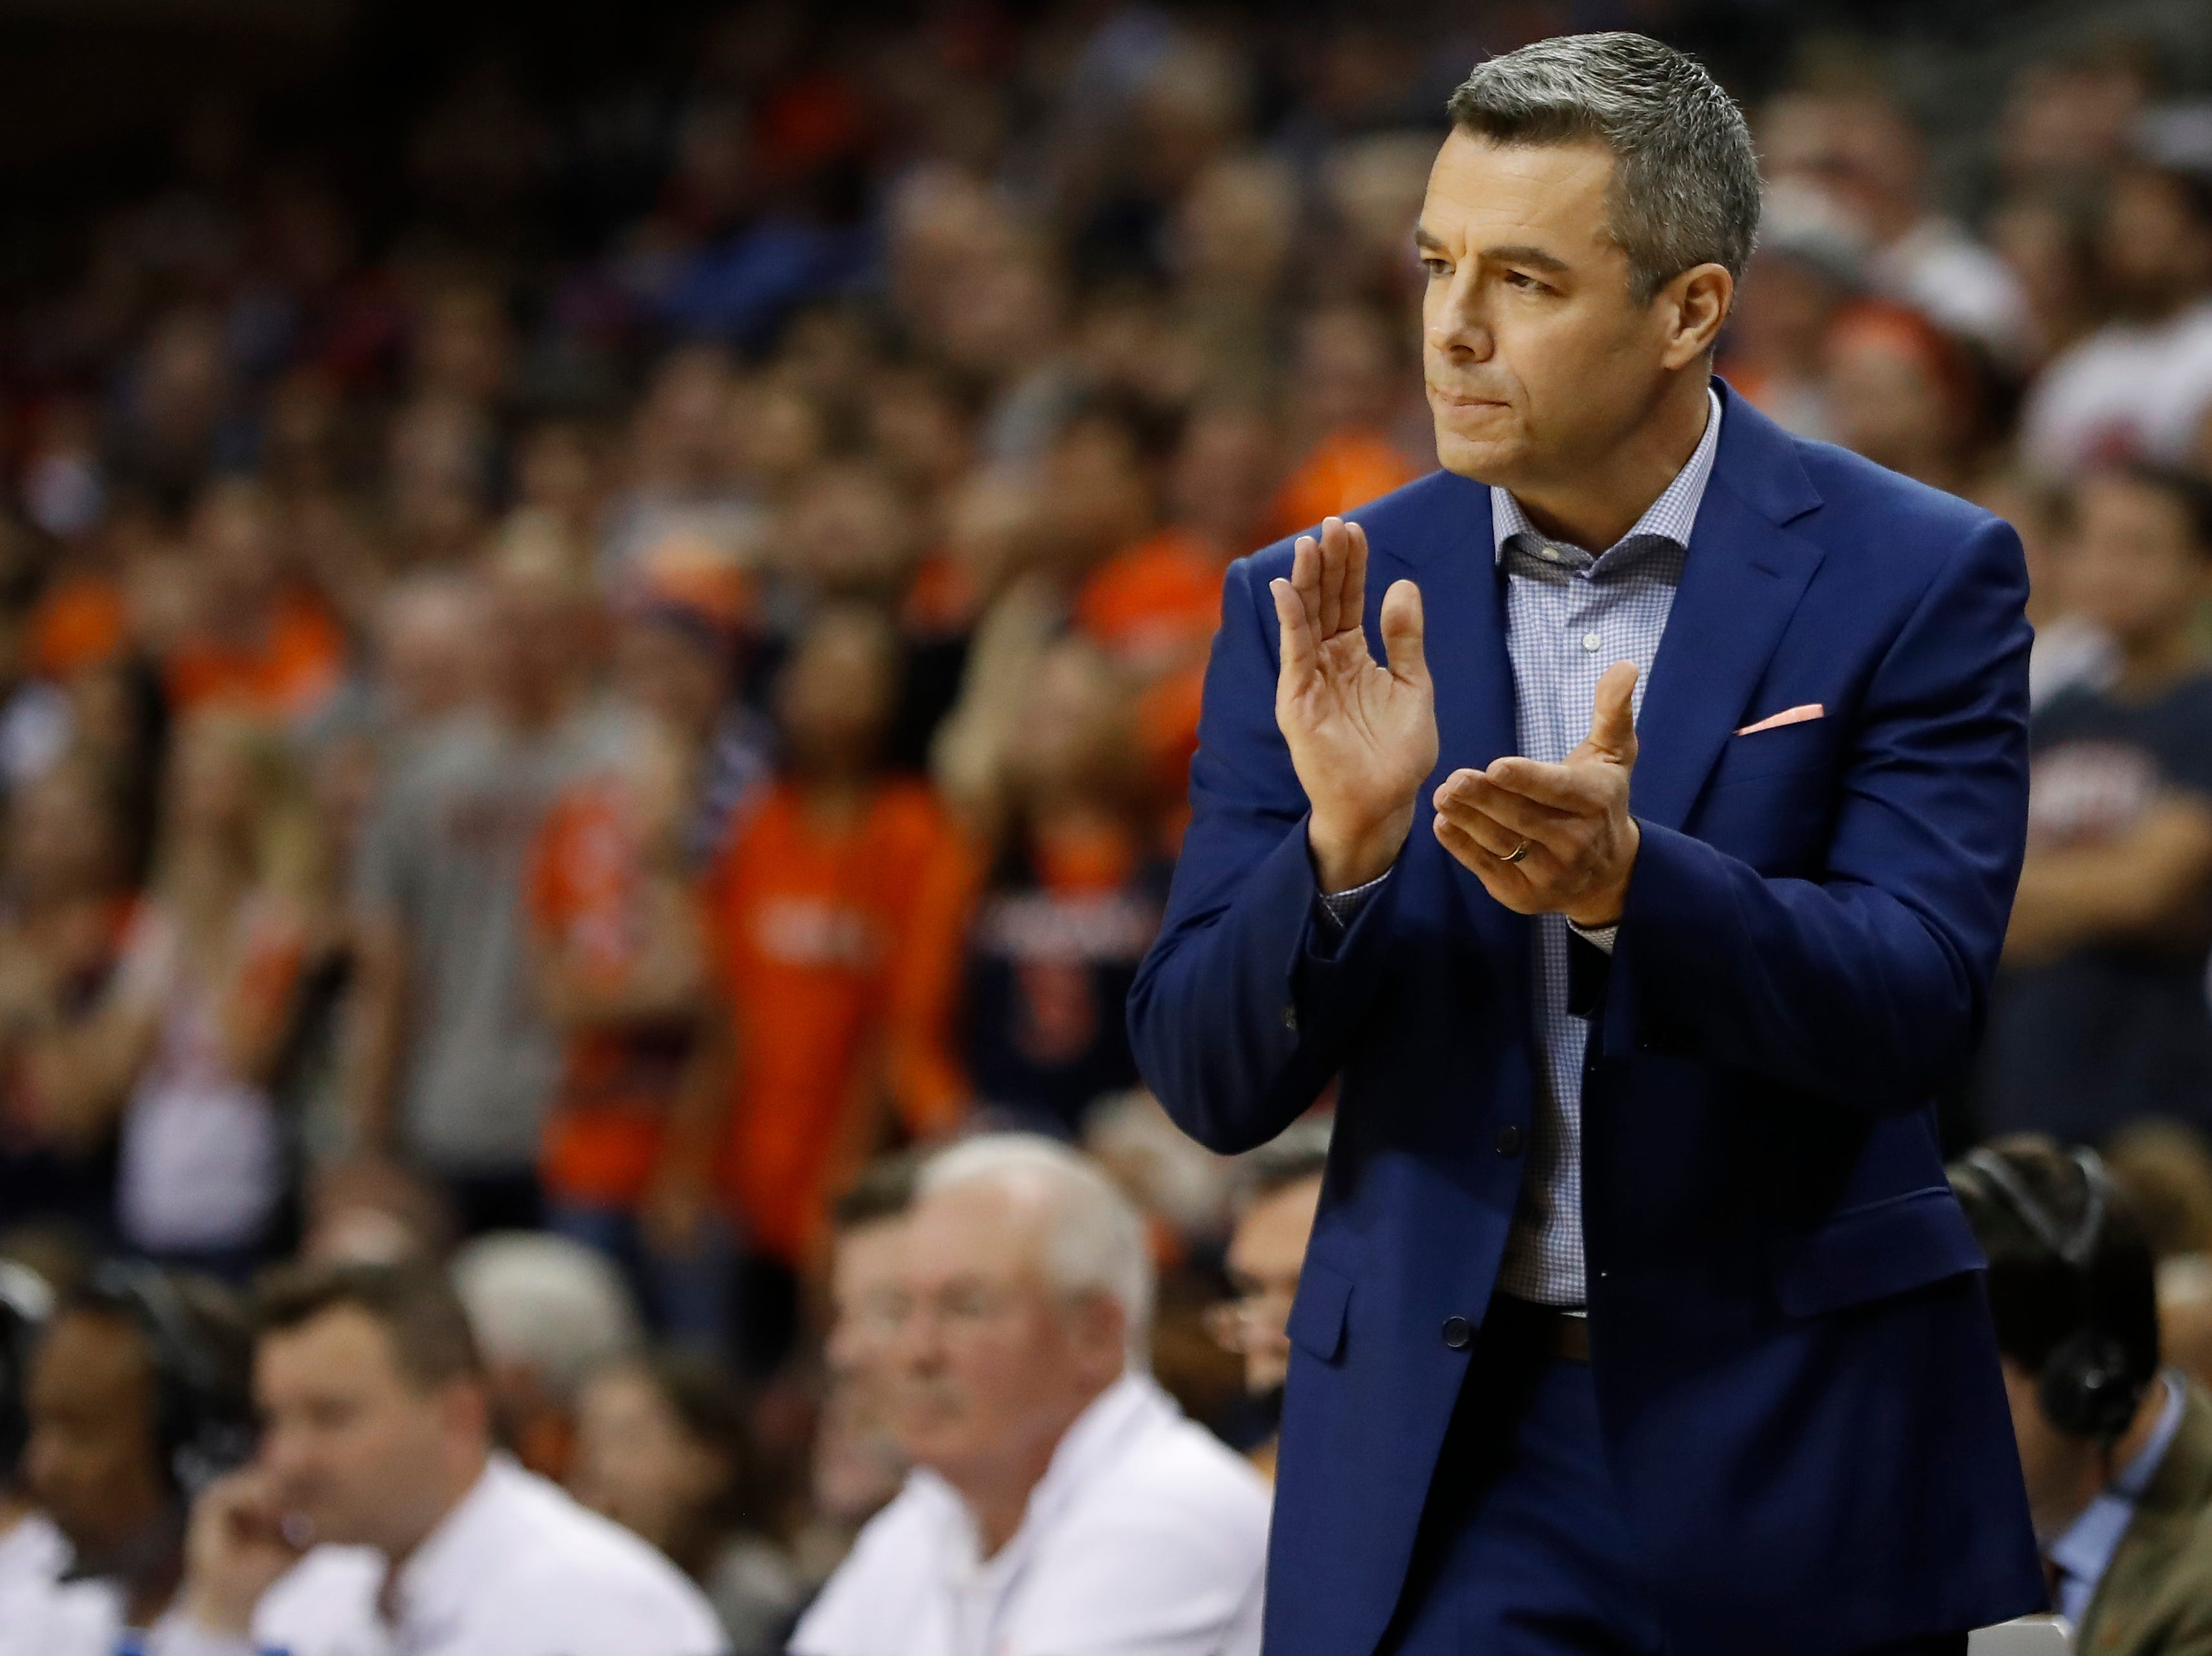 Jan 5, 2019; Charlottesville, VA, USA; Virginia Cavaliers head coach Tony Bennett claps from the bench against the Florida State Seminoles in the first half at John Paul Jones Arena. Mandatory Credit: Geoff Burke-USA TODAY Sports